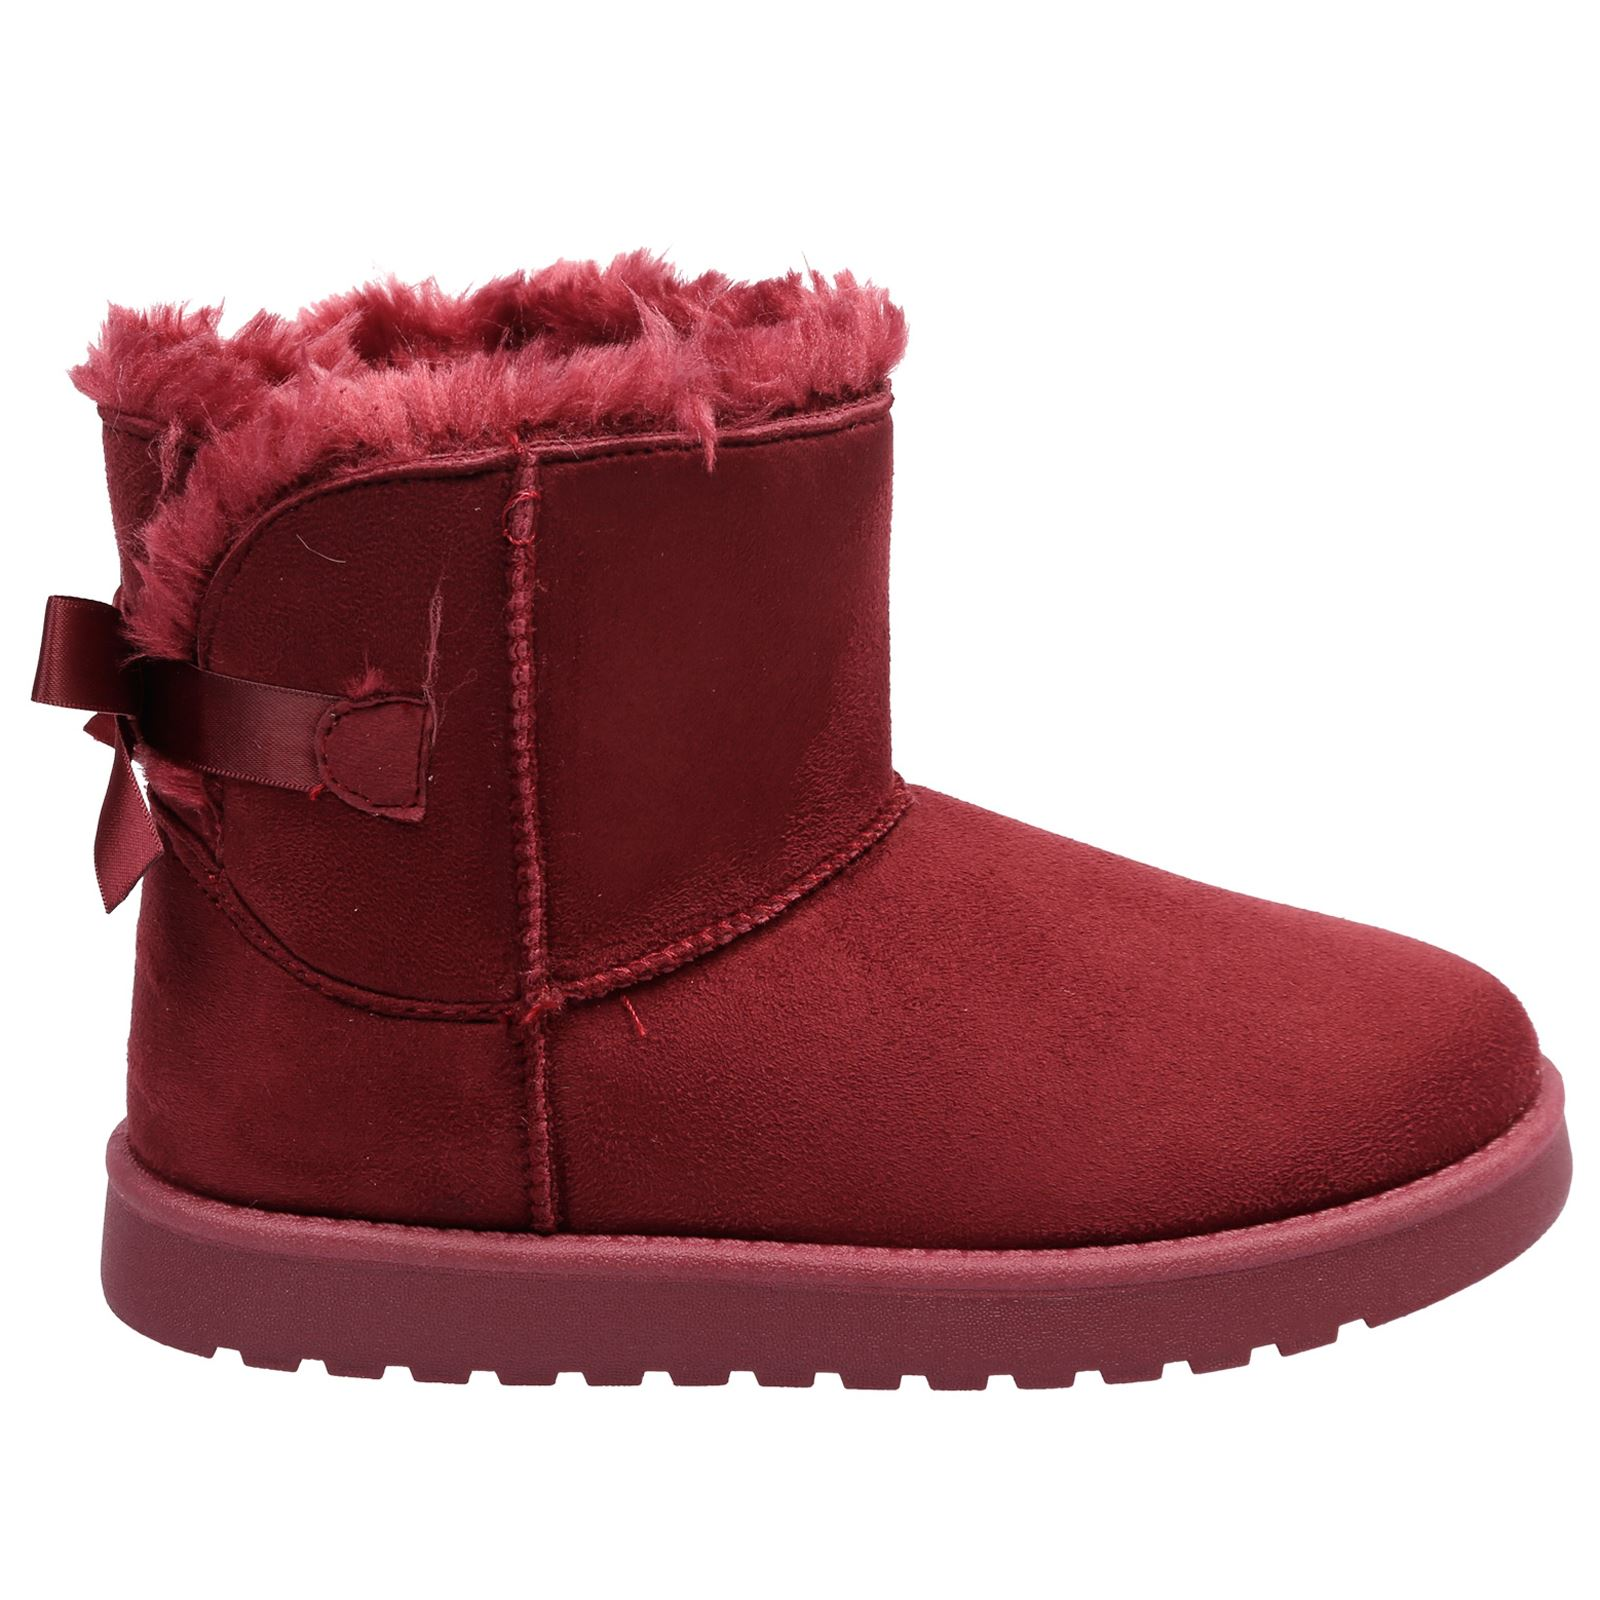 Greta Girls Kids Flats Low Heels Fur Lined Ankle Boots Childrens Ribbon Bow Size